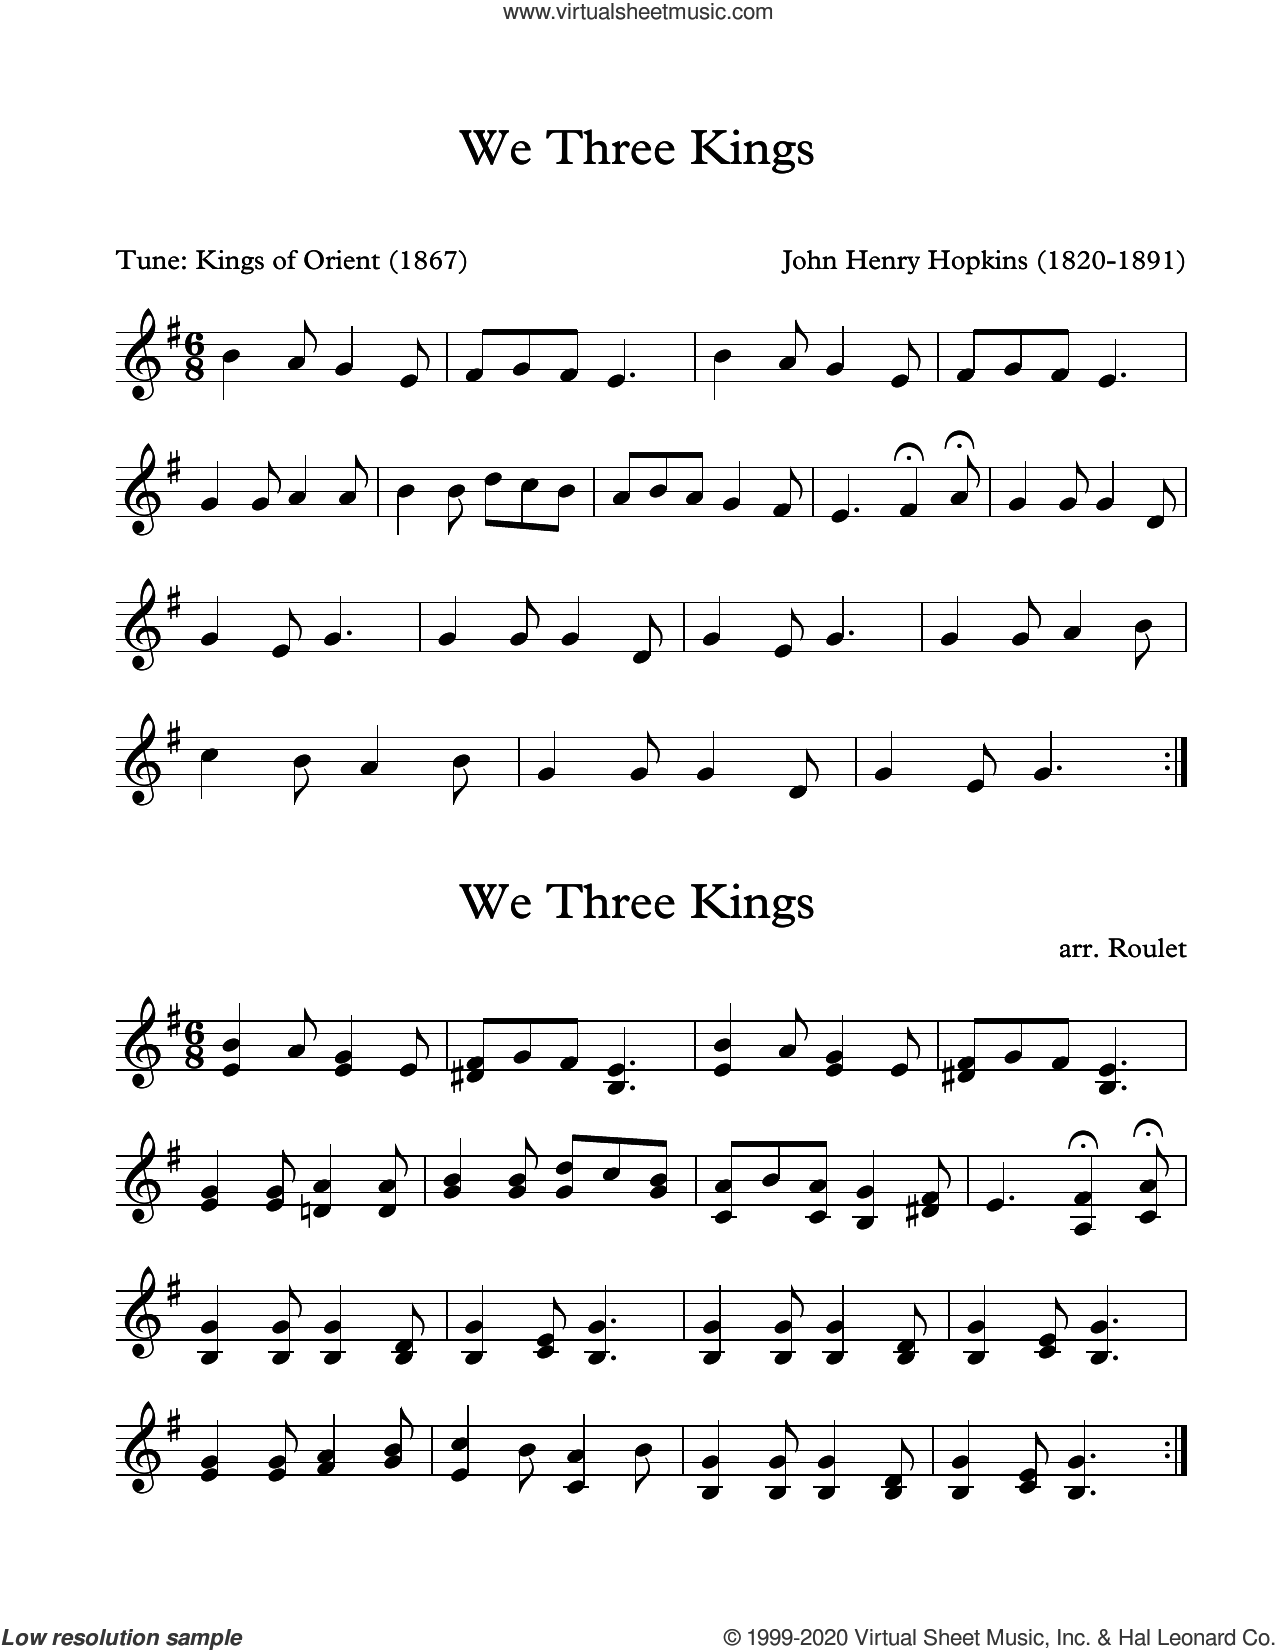 We Three Kings (arr. Patrick Roulet) sheet music for Marimba Solo by John H. Hopkins and Patrick Roulet, intermediate skill level